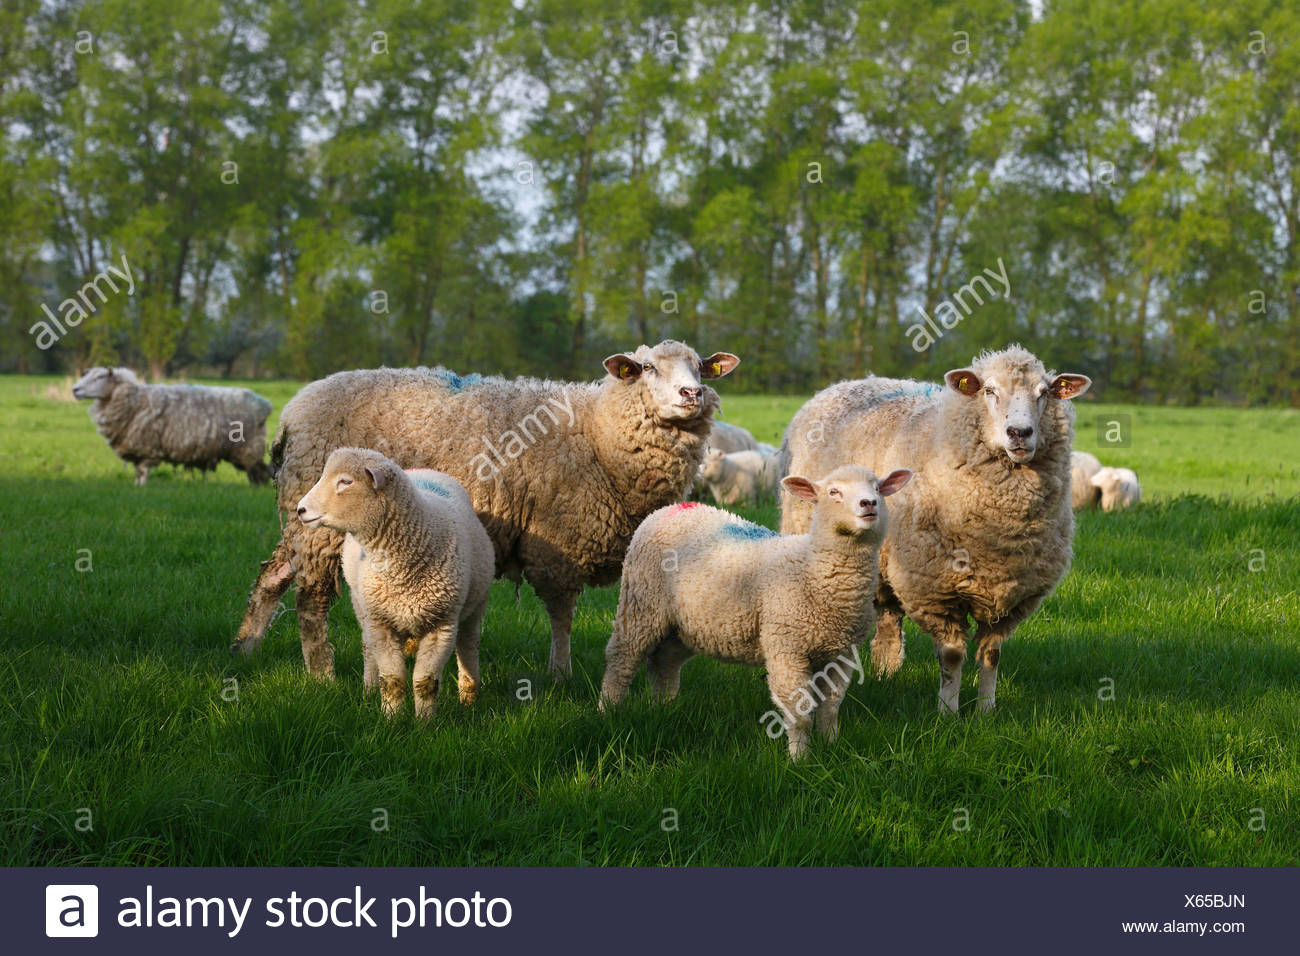 Domestic sheep (Ovis orientalis aries) ewes with lambs - Stock Image